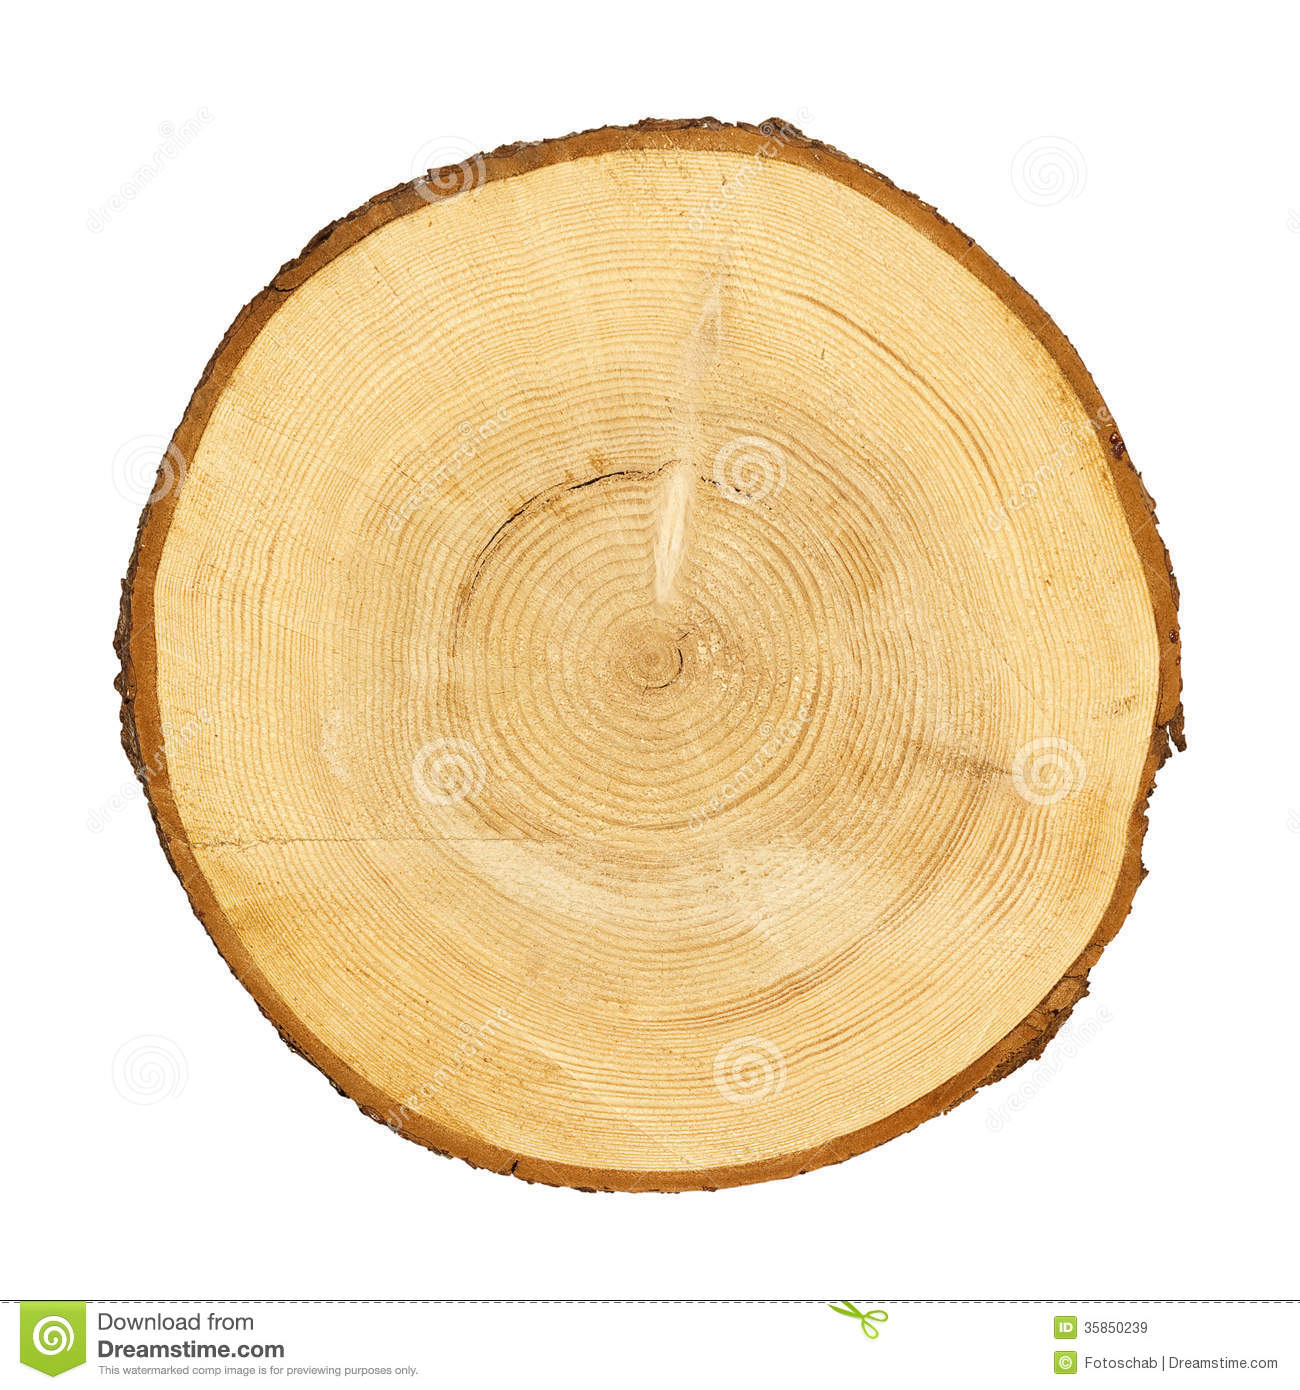 how to take down a tree in sections